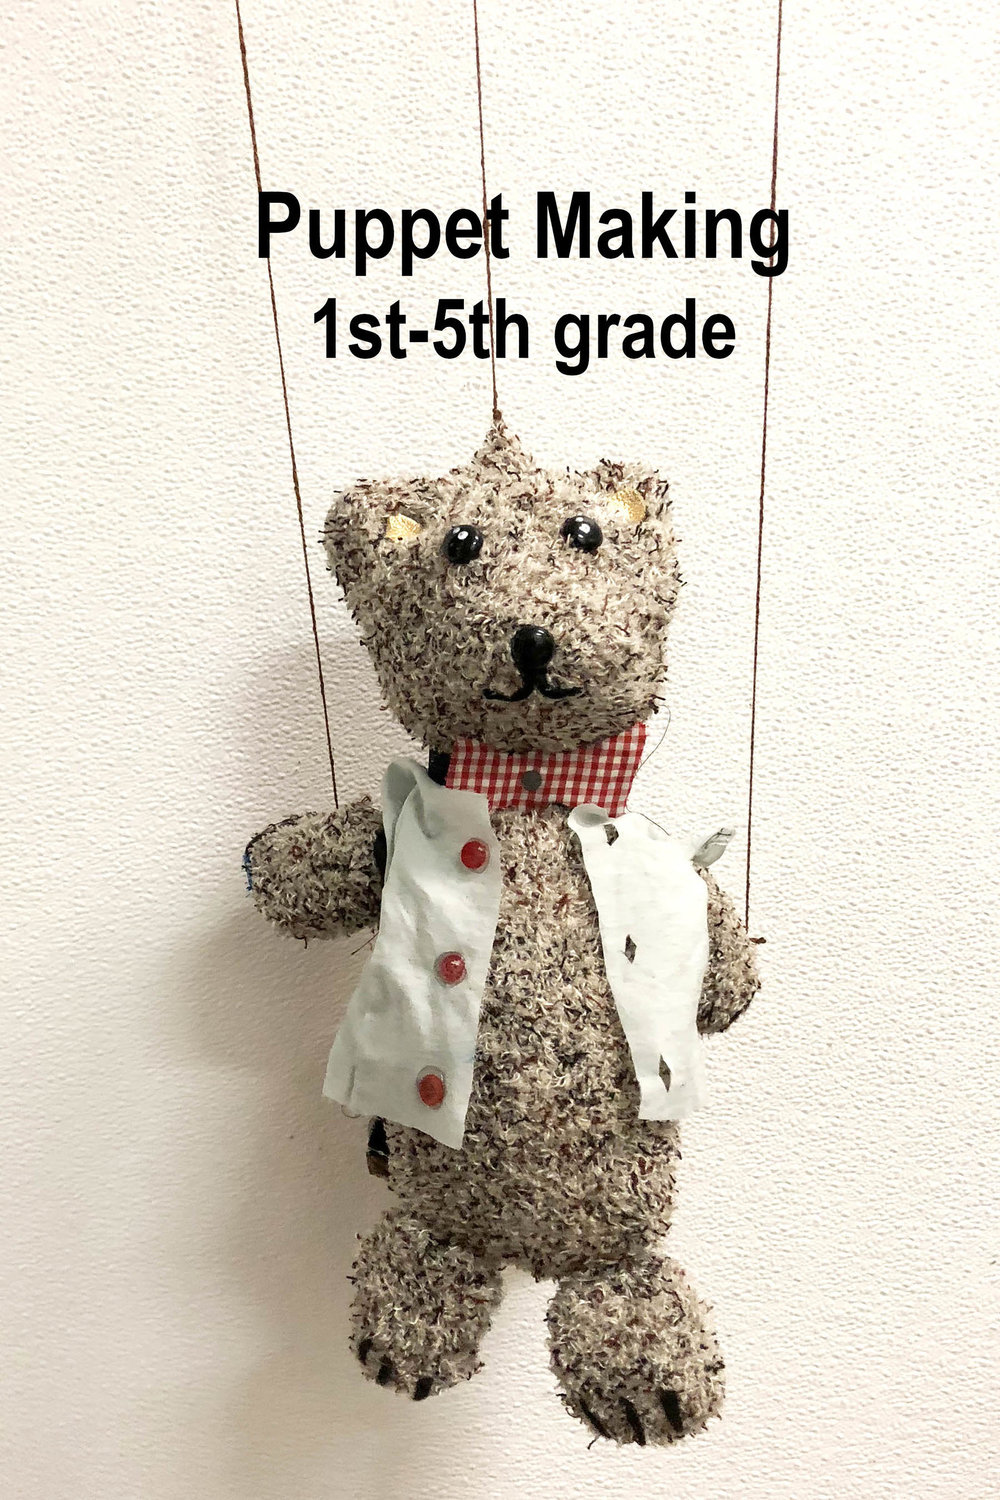 puppet making 1st to 5th.jpg